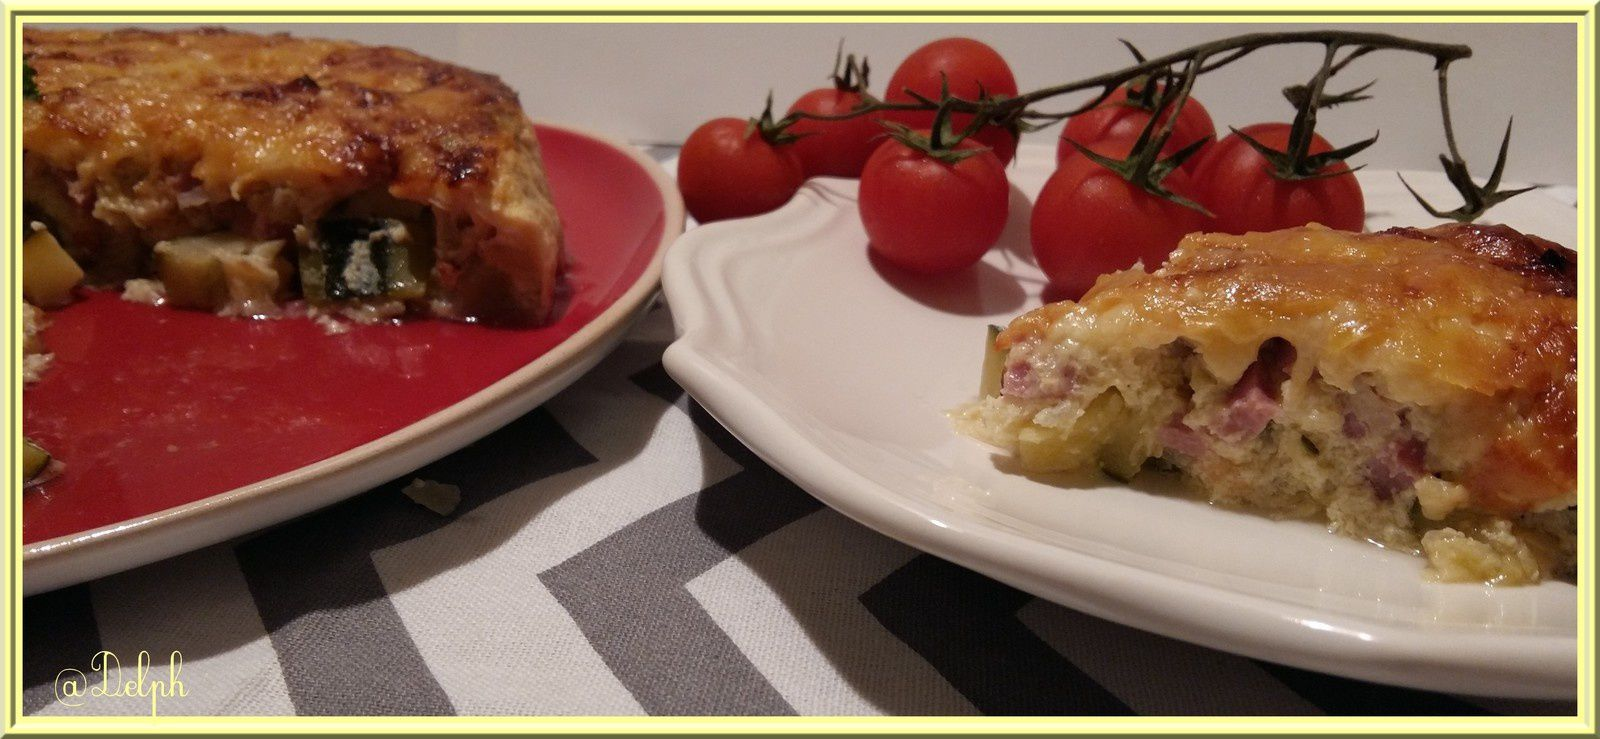 Flan courgettes jambon